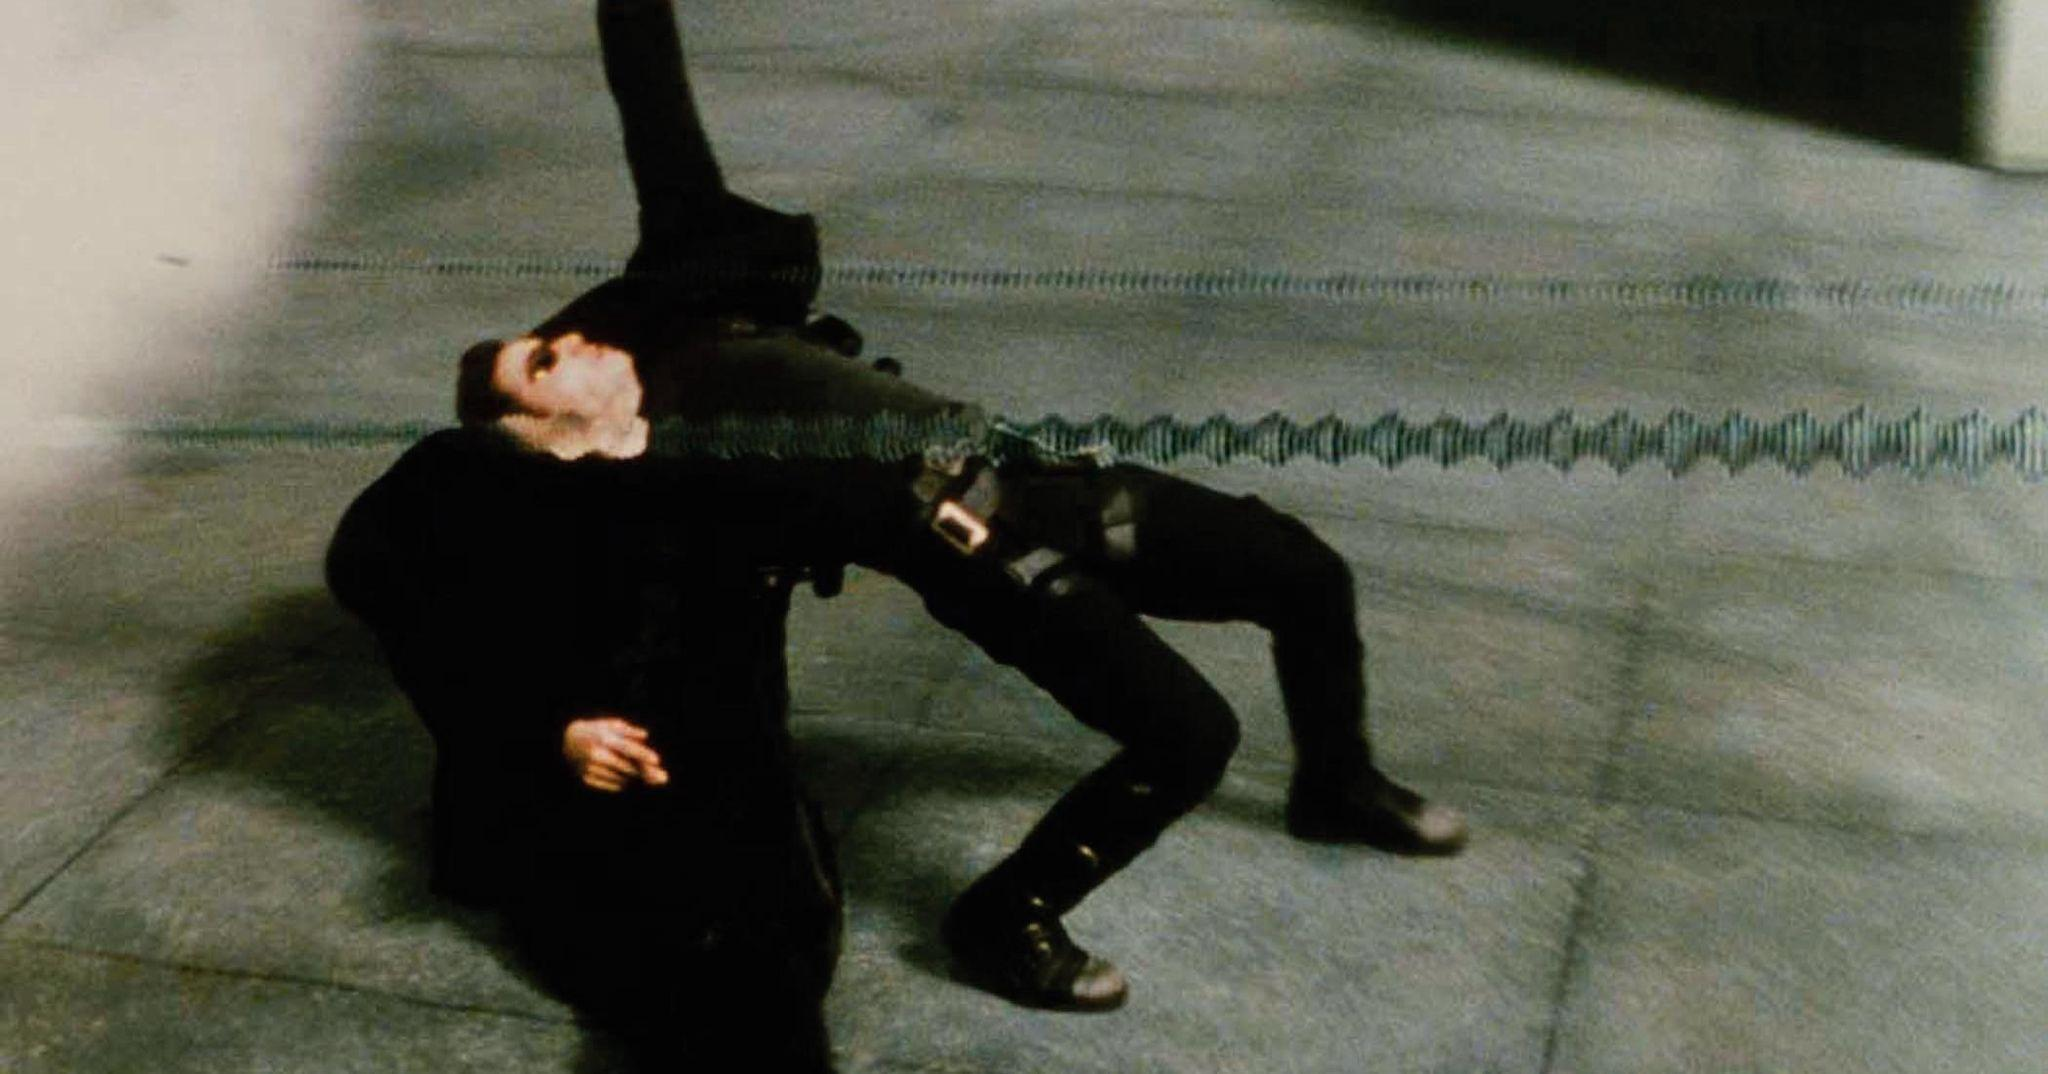 Keanu Reeves ducks bullets in the Bullet Time sequence in The Matrix (1999)